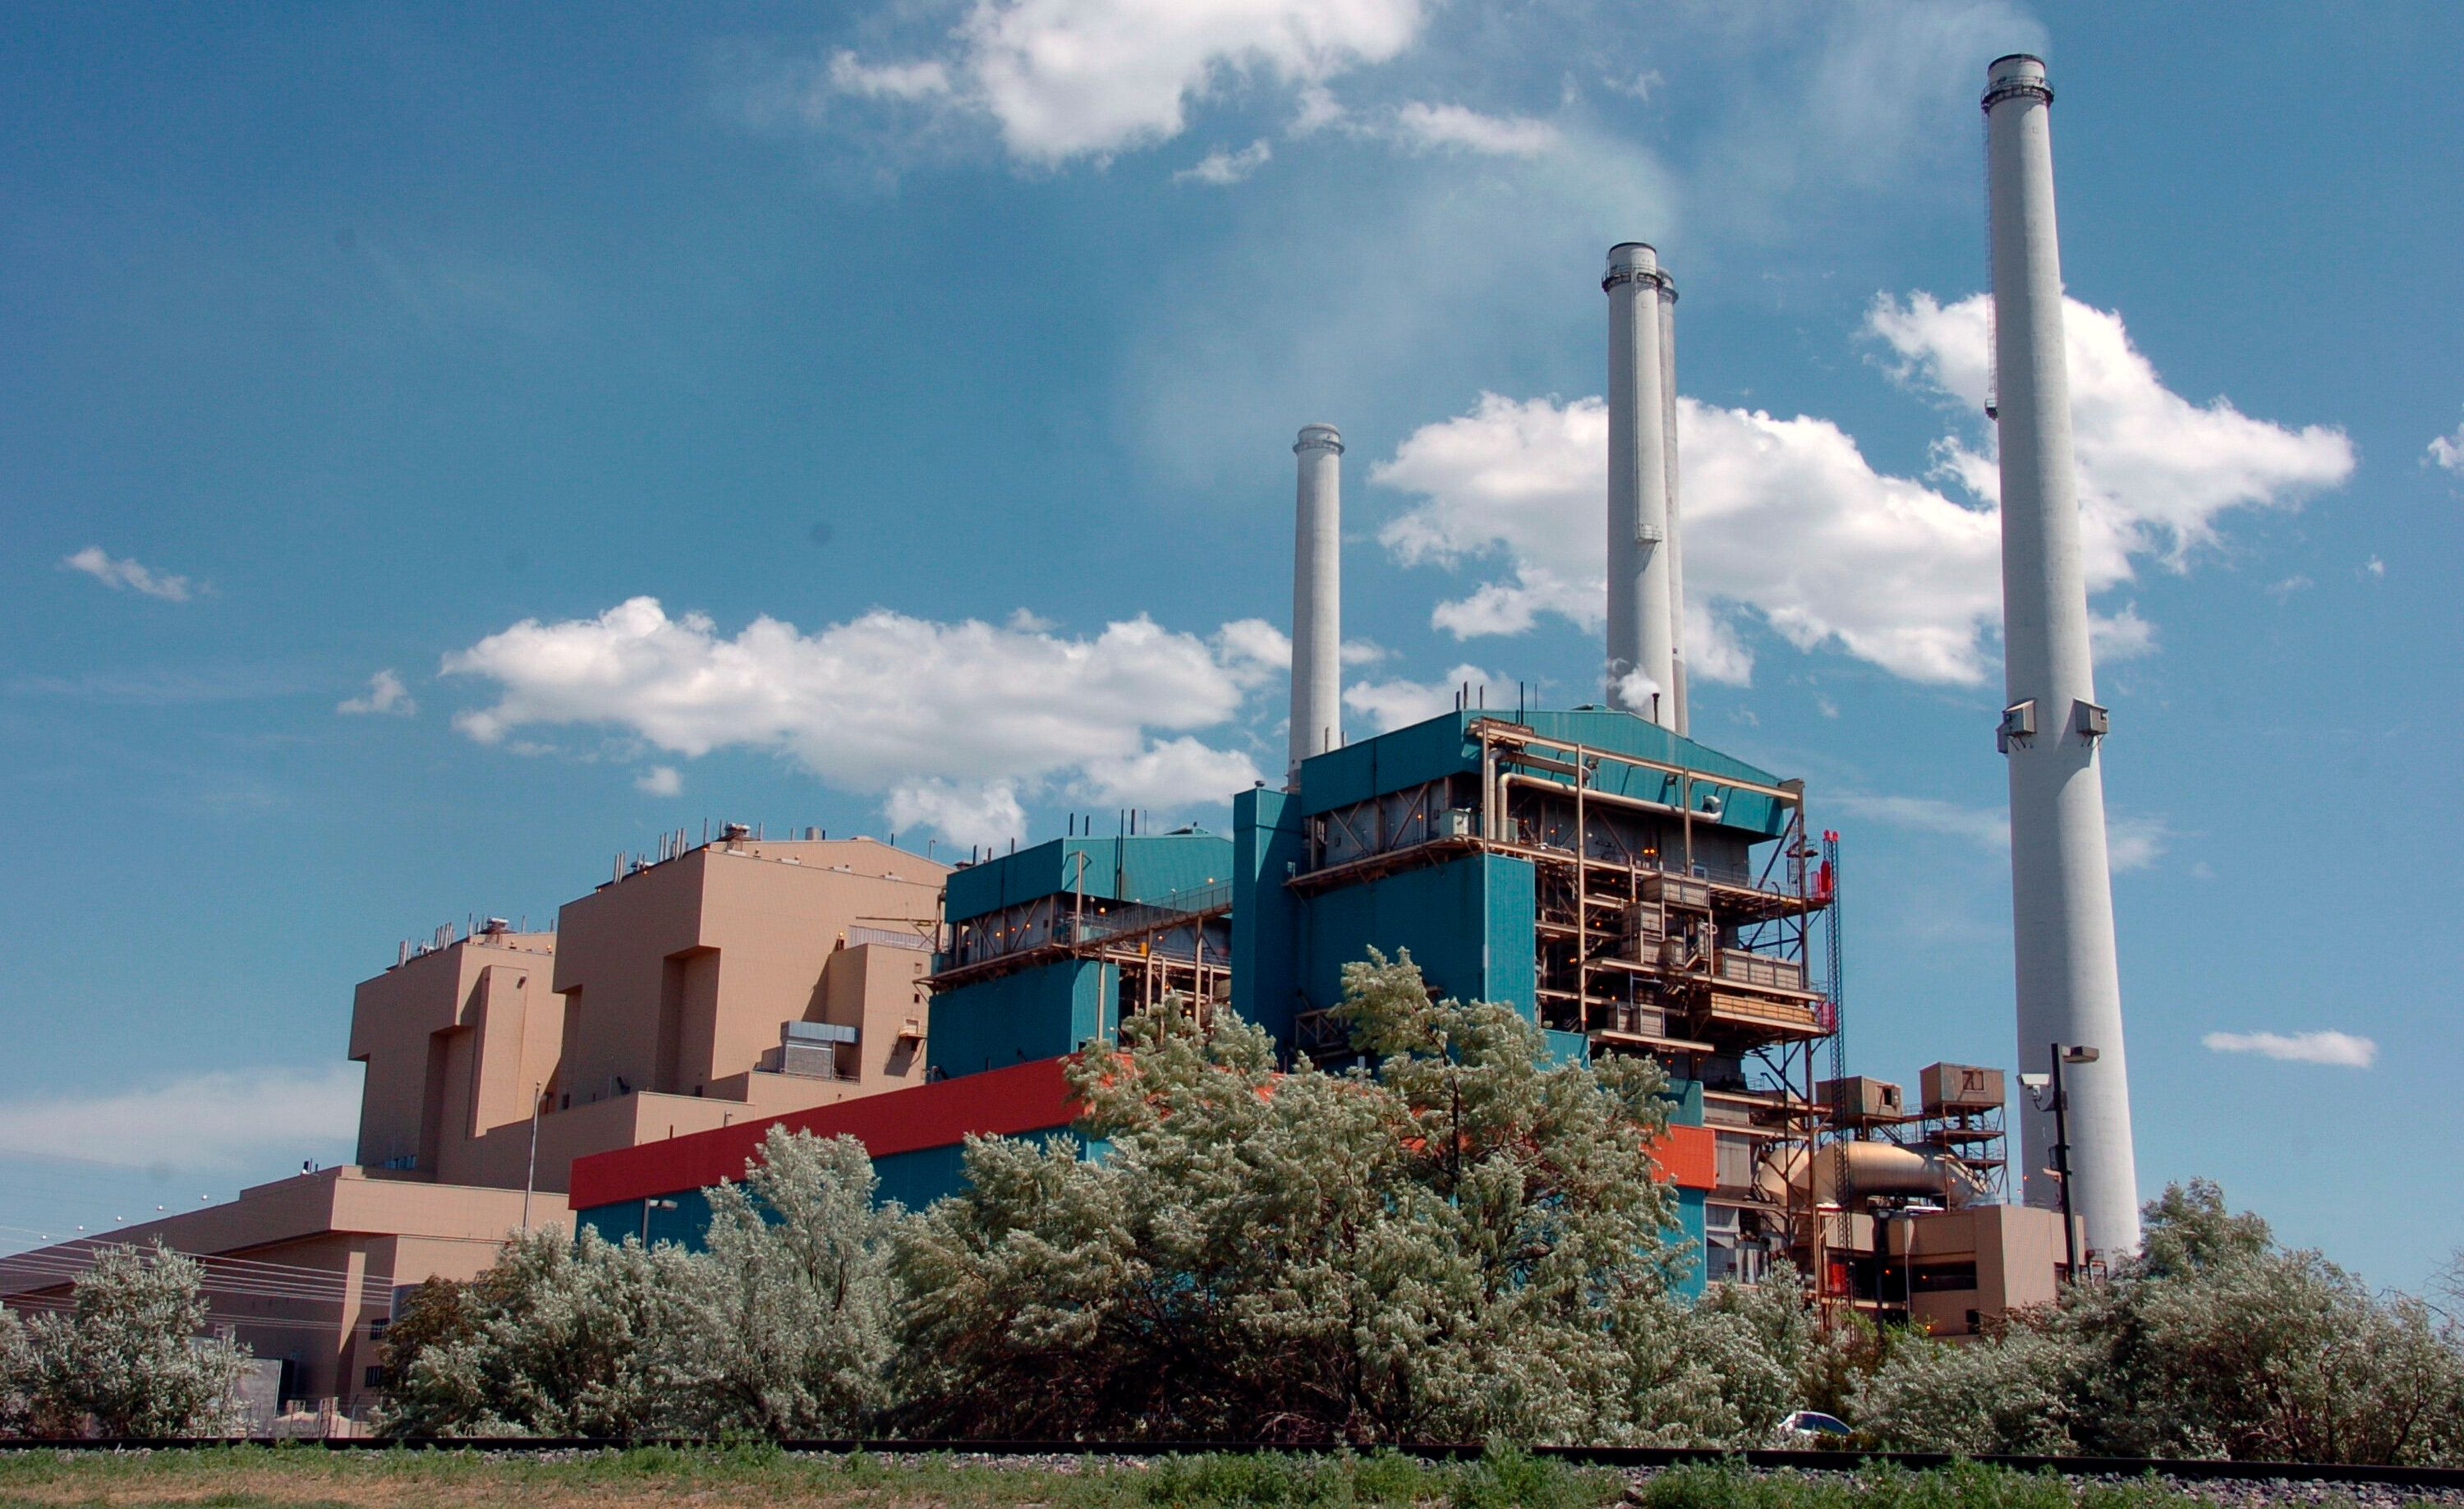 This 2010 file photo shows the Colstrip Steam Electric Station, a coal-fired power plant in Colstrip, Montana.